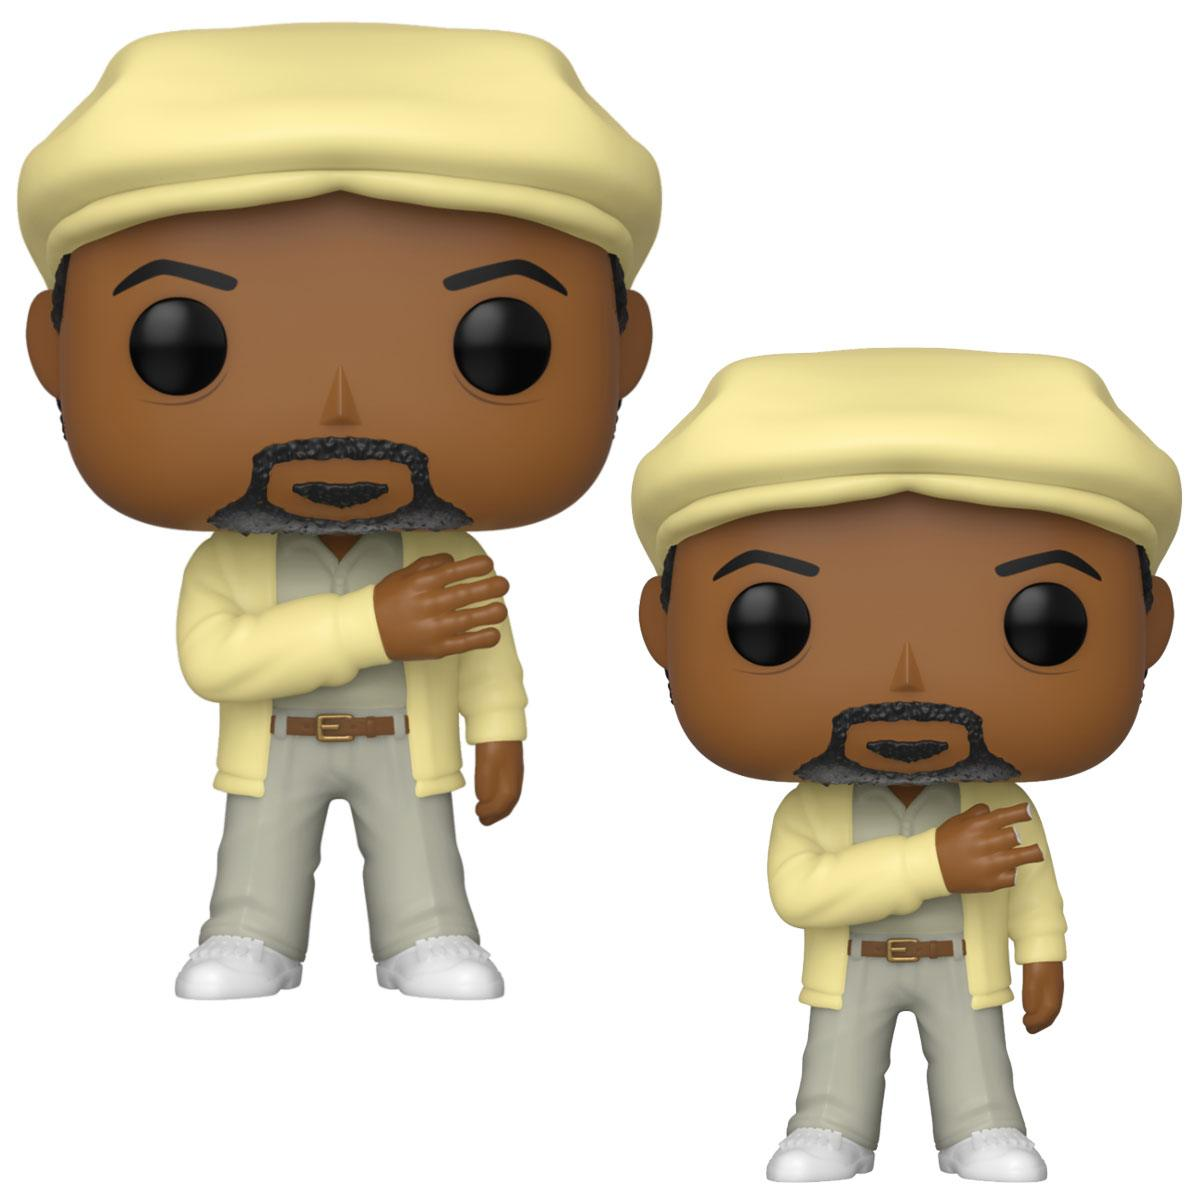 Happy Gilmore POP! Movies Vinyl Figures Chubbs 9 cm Assortment (6)